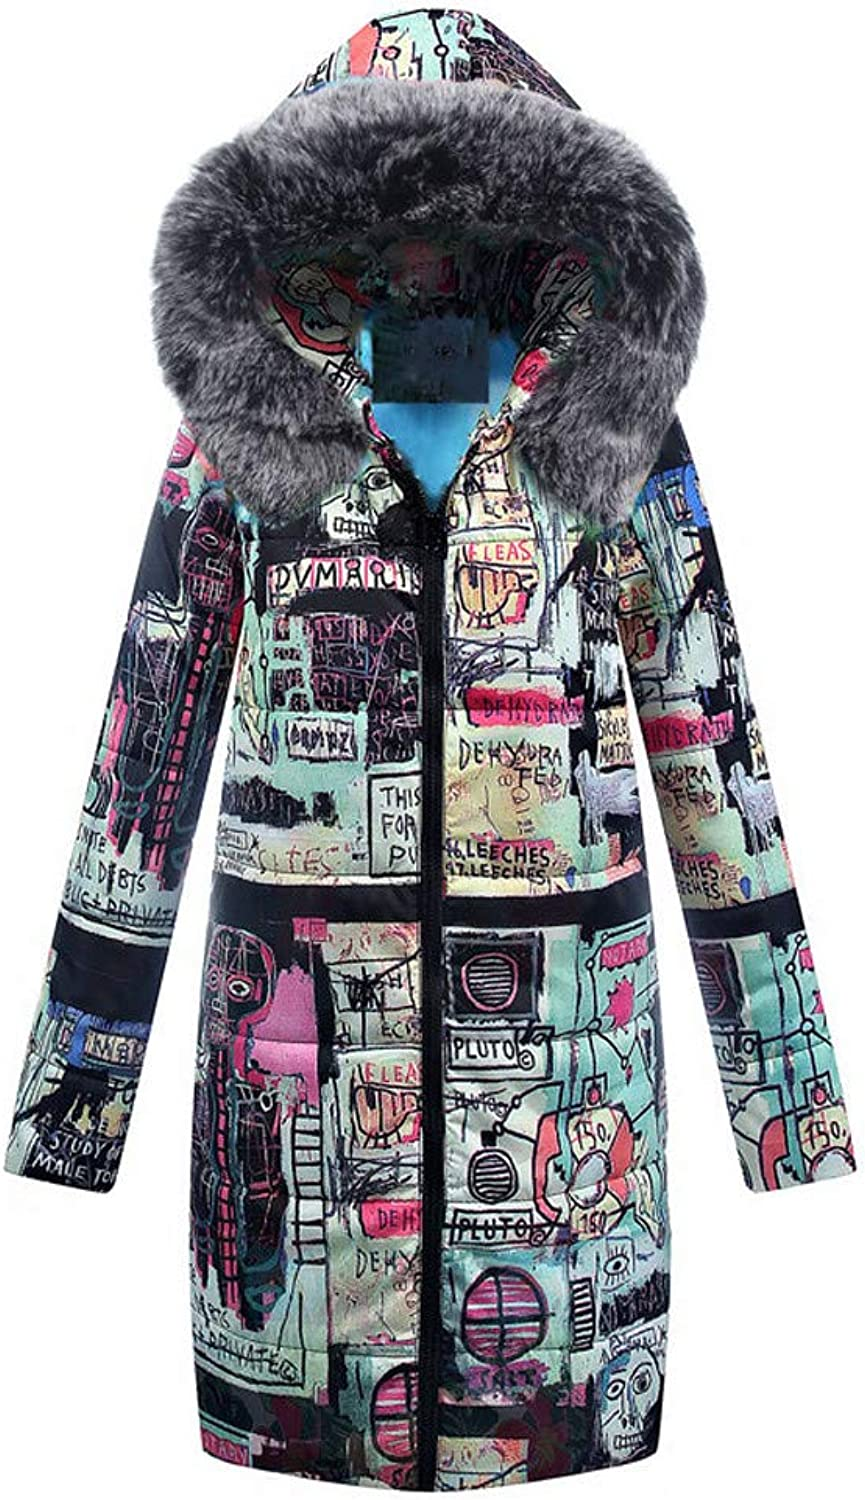 Cotton Hooded CoatHan Shi Womens Zip Up Print Long Parka Quilted Jacket Outwear